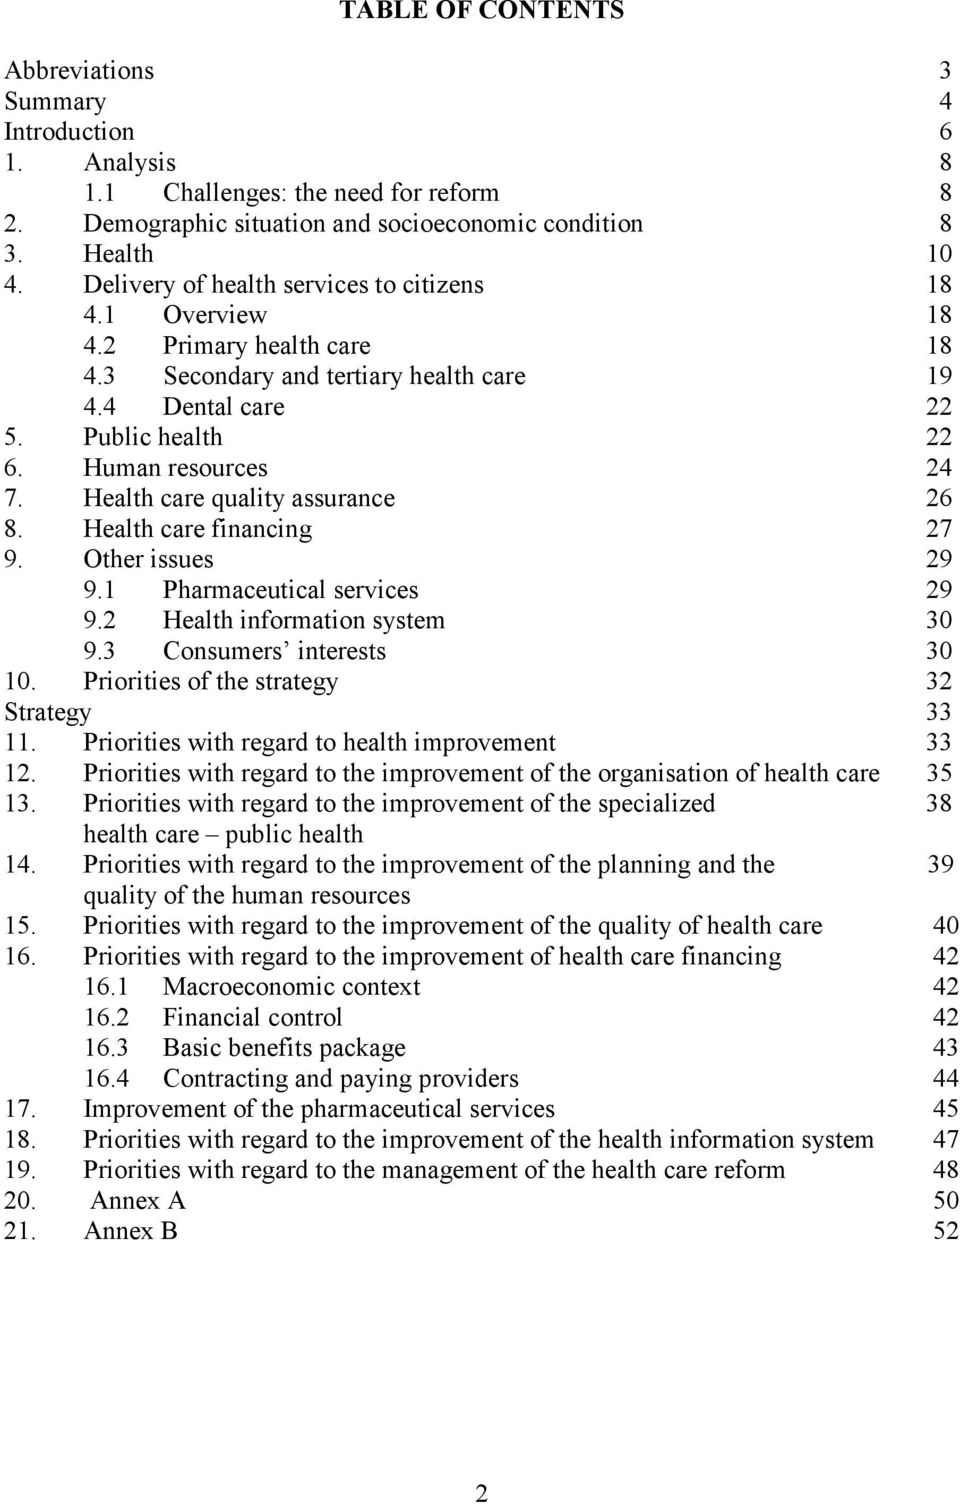 Health care quality assurance 26 8. Health care financing 27 9. Other issues 29 9.1 Pharmaceutical services 29 9.2 Health information system 30 9.3 Consumers interests 30 10.